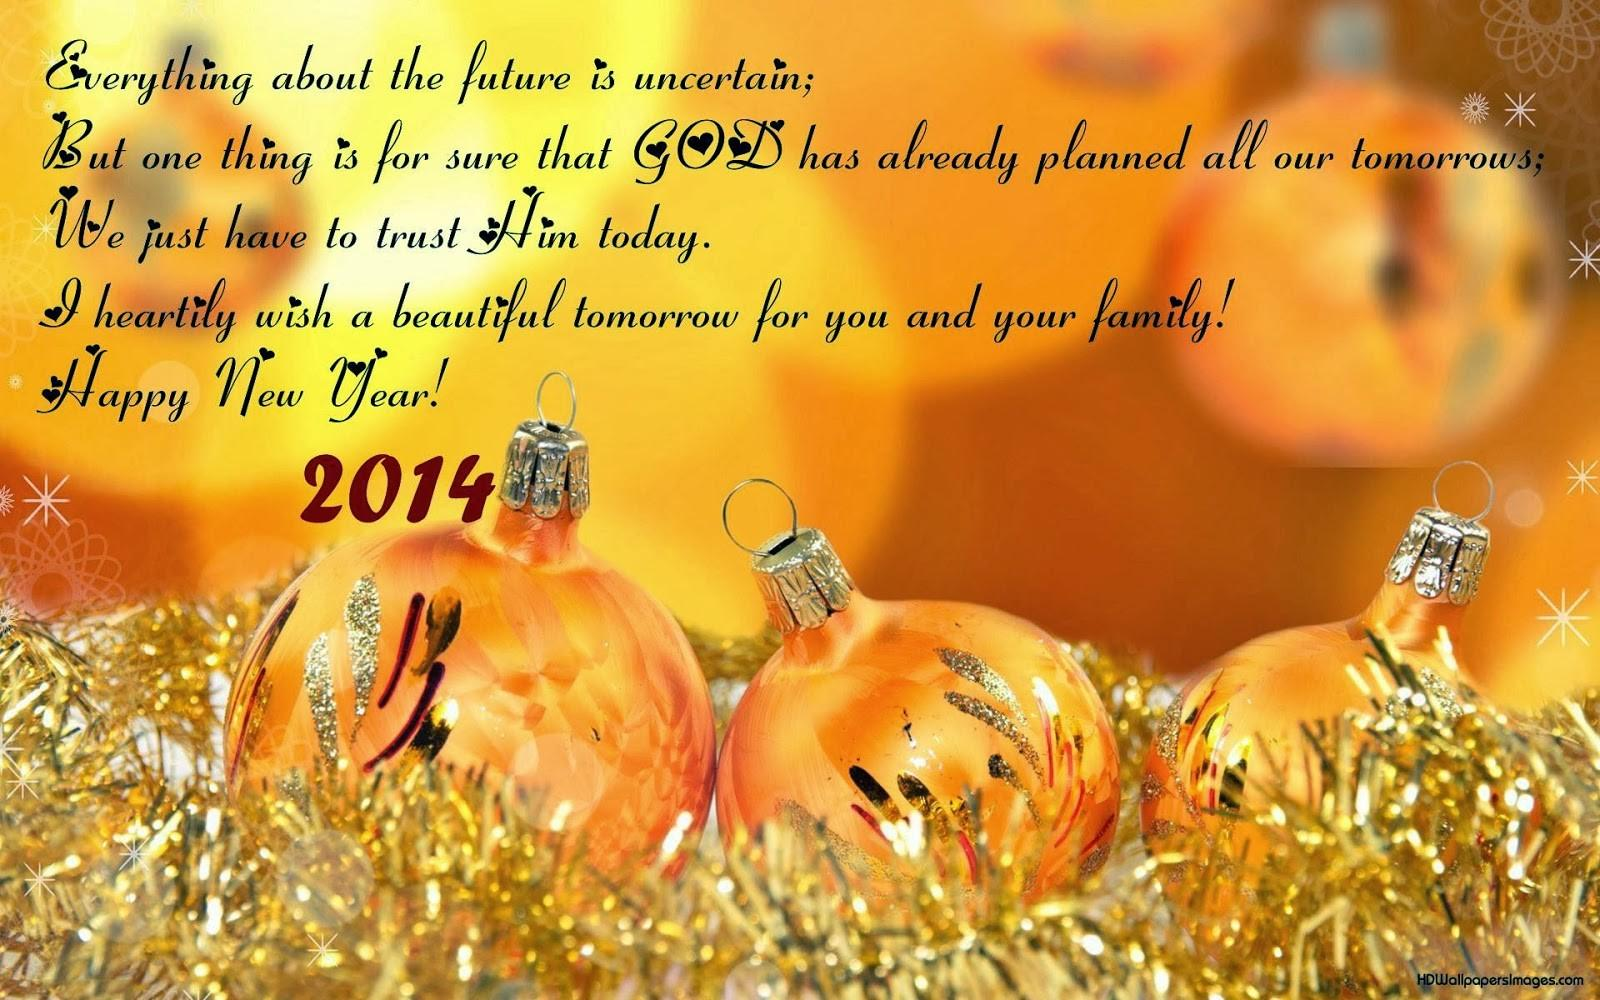 Happy New Year 2014 Greeting Cards Your